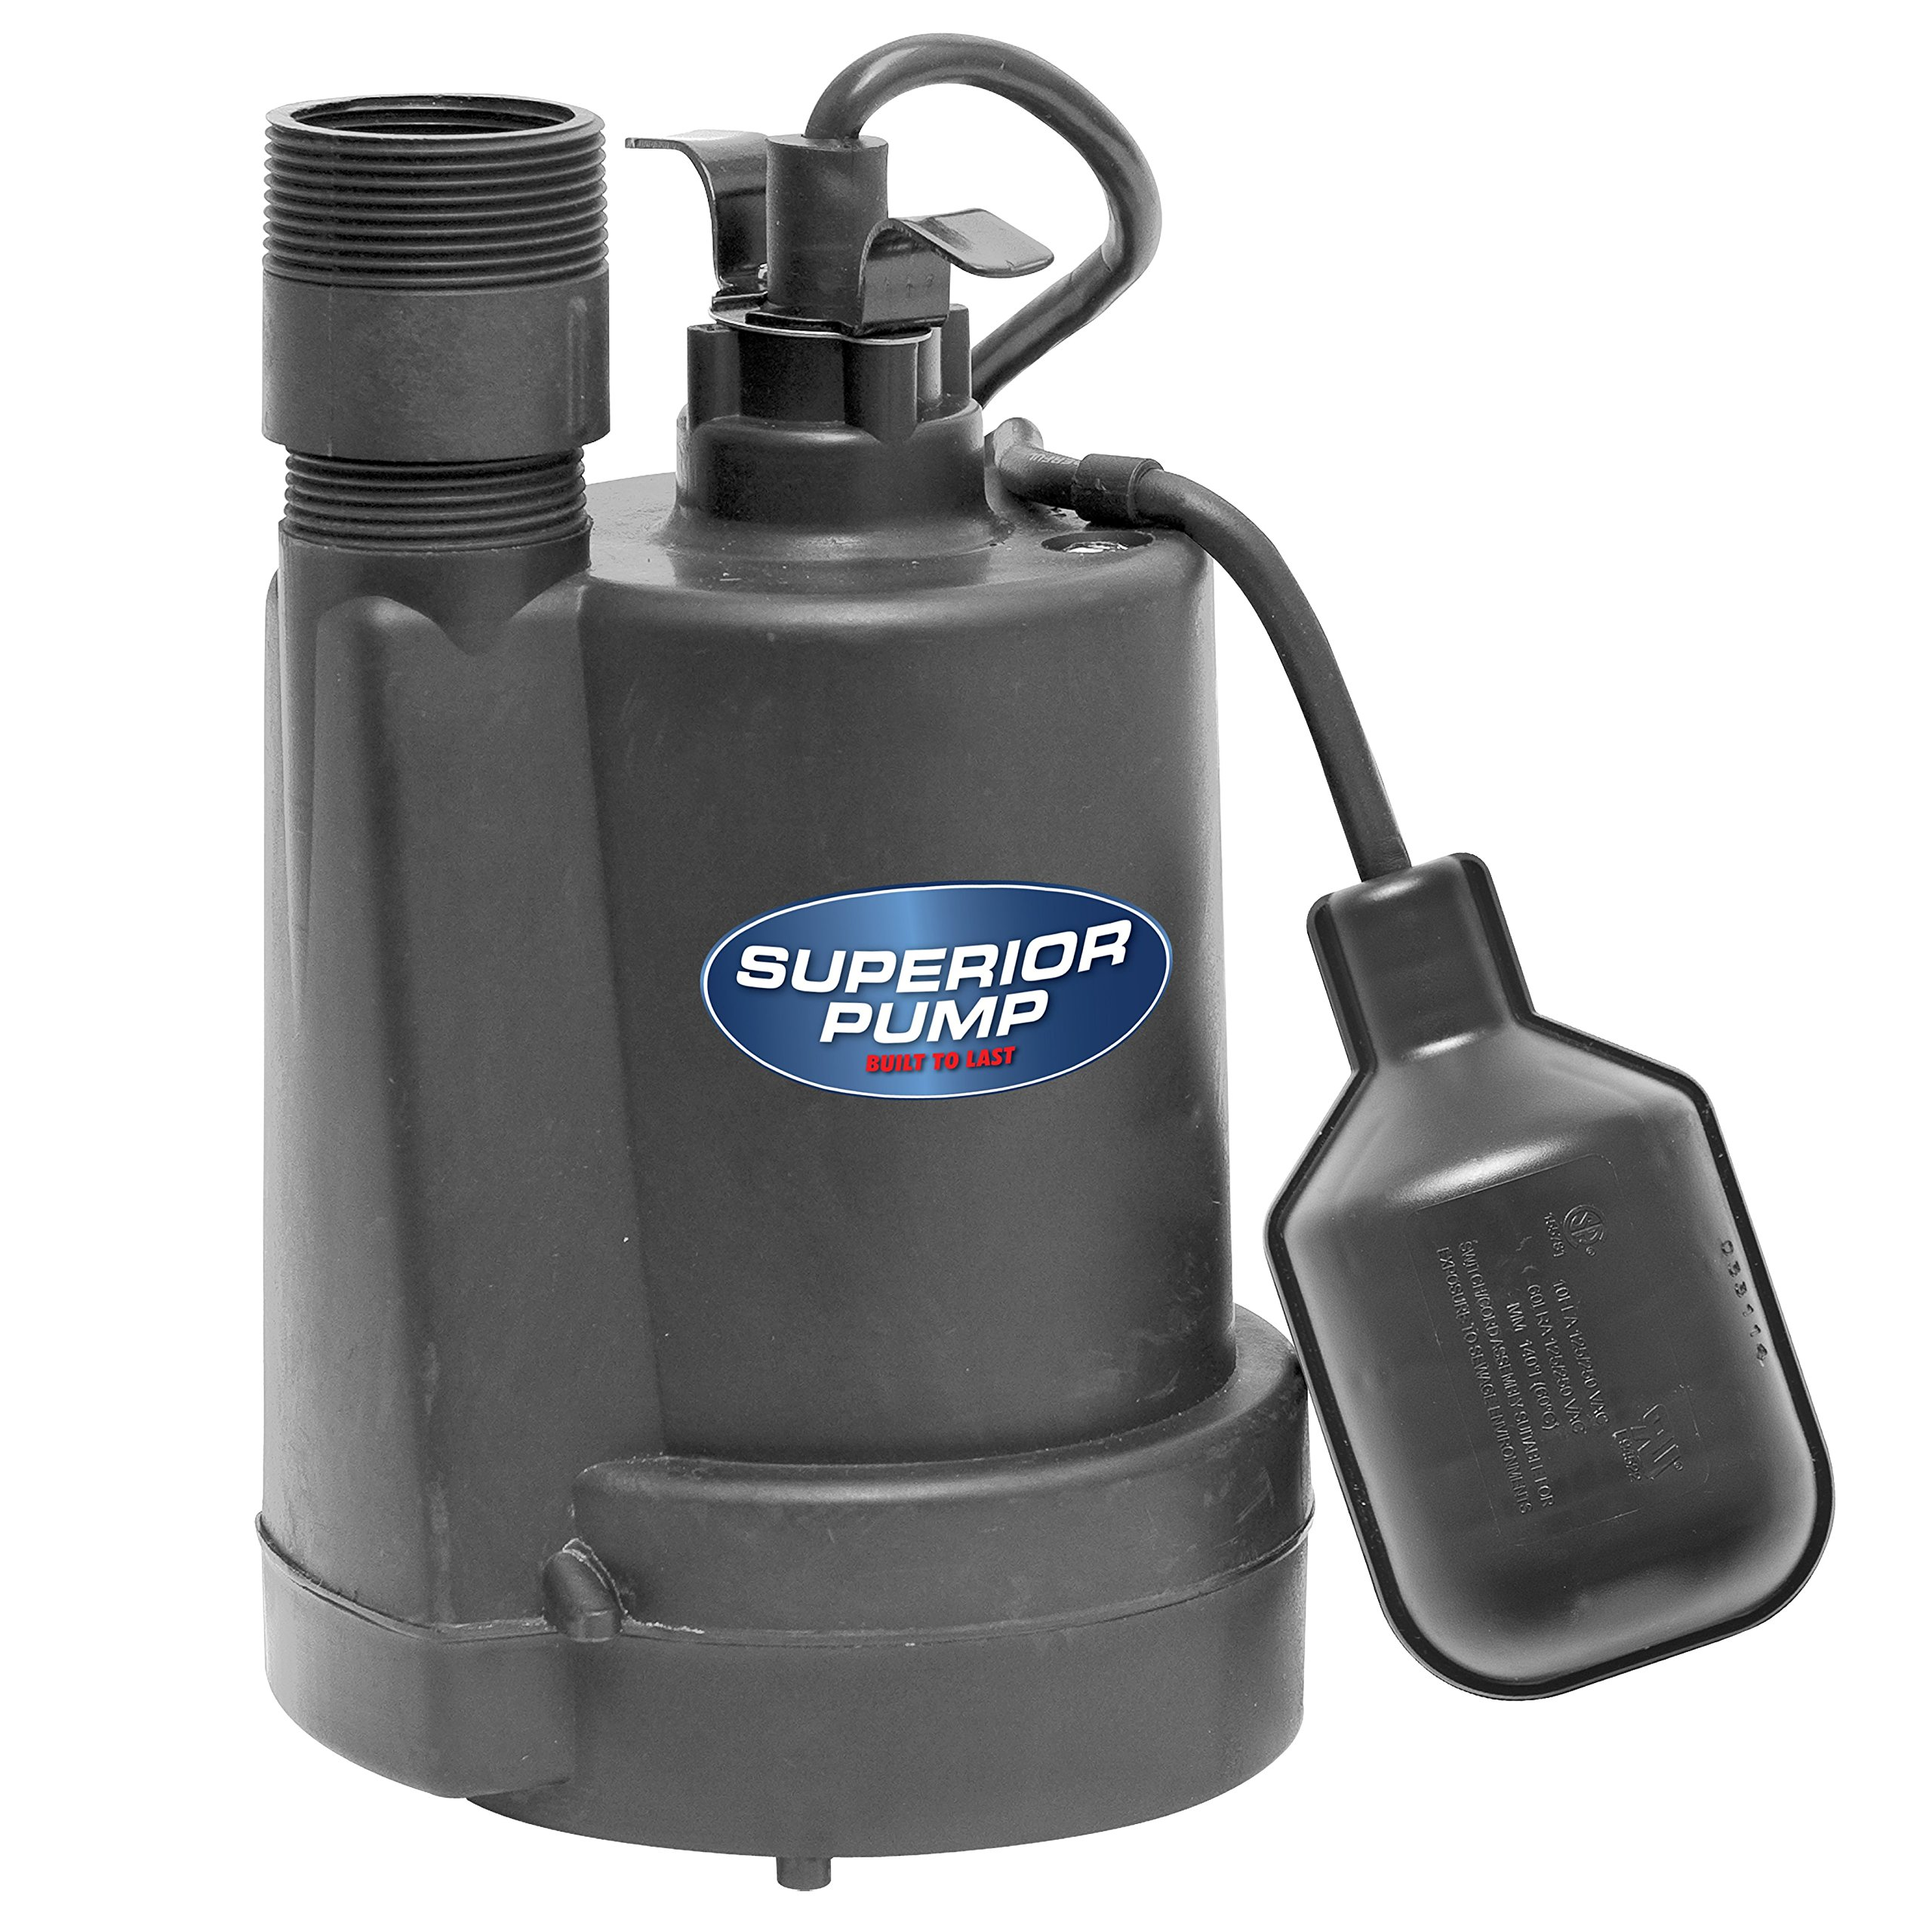 Superior Pump 92250 1/4-Horsepower Thermoplastic Sump Pump with Tethered Float Switch by Superior Pump